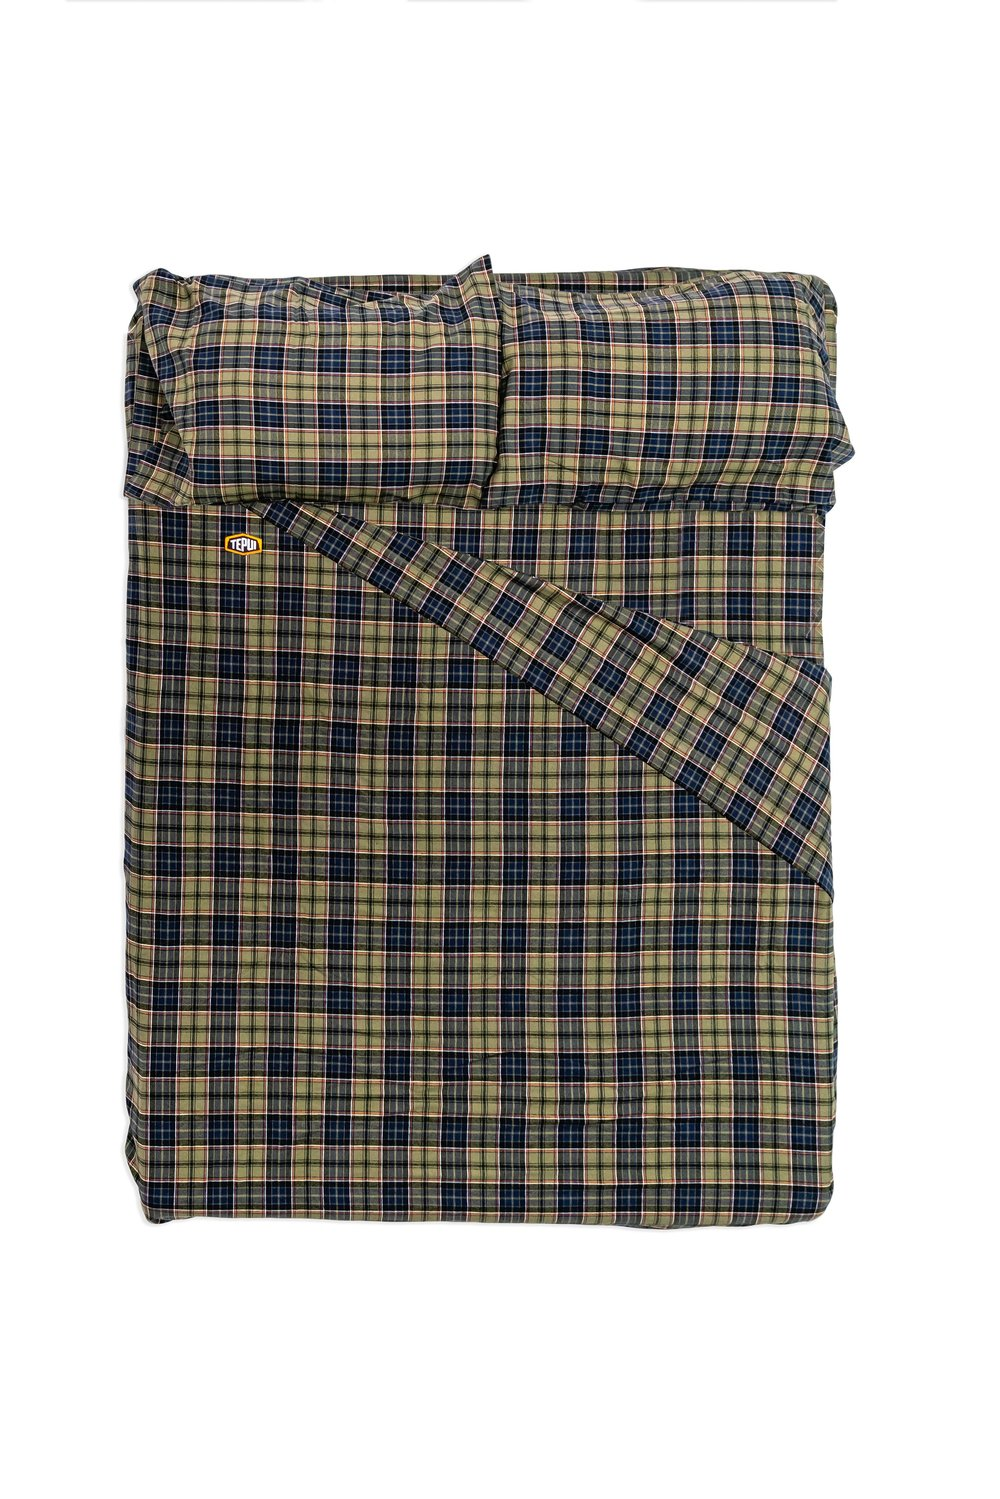 Tepui Flannel Fitted Sheets; Blue-Green Plaid; Universal Fit; Ships Free